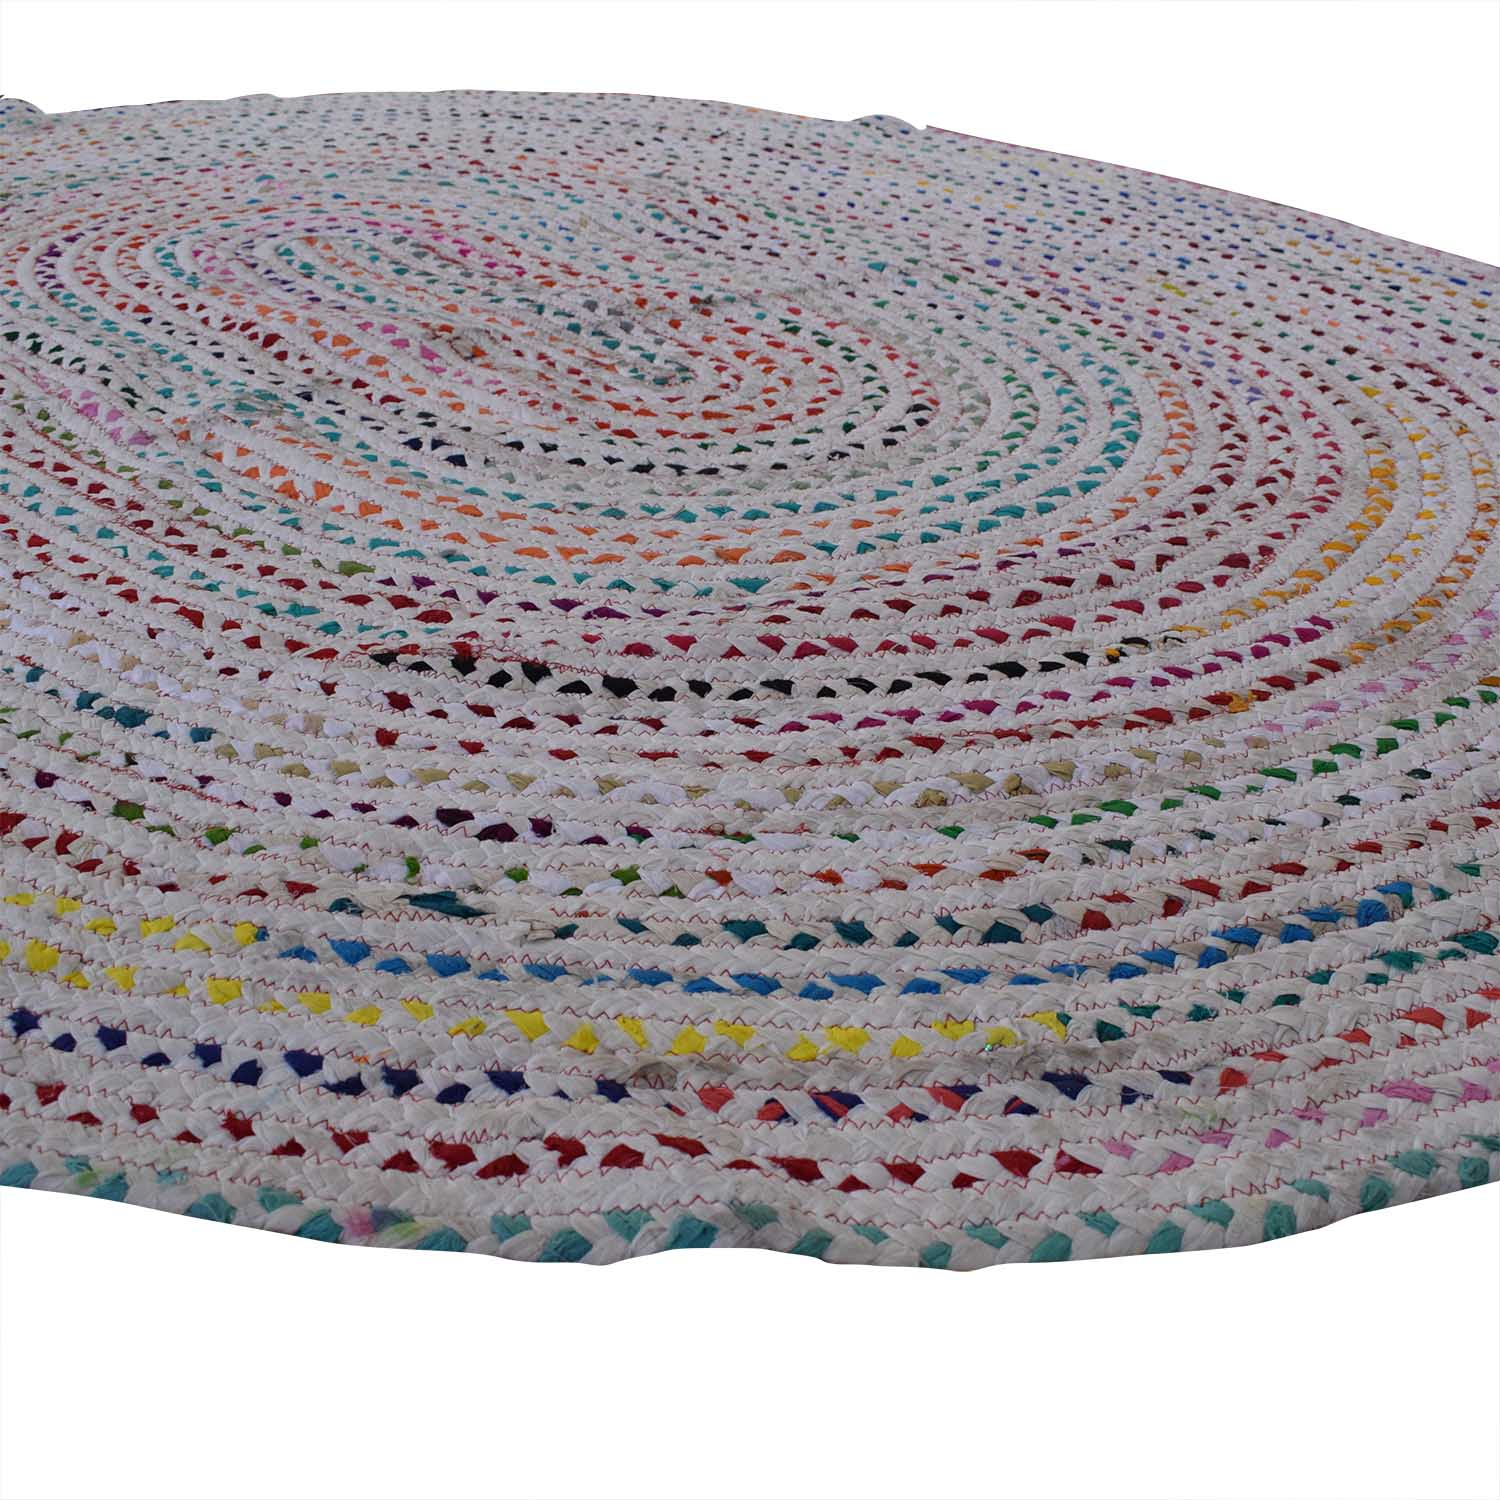 Oval Woven Rug price